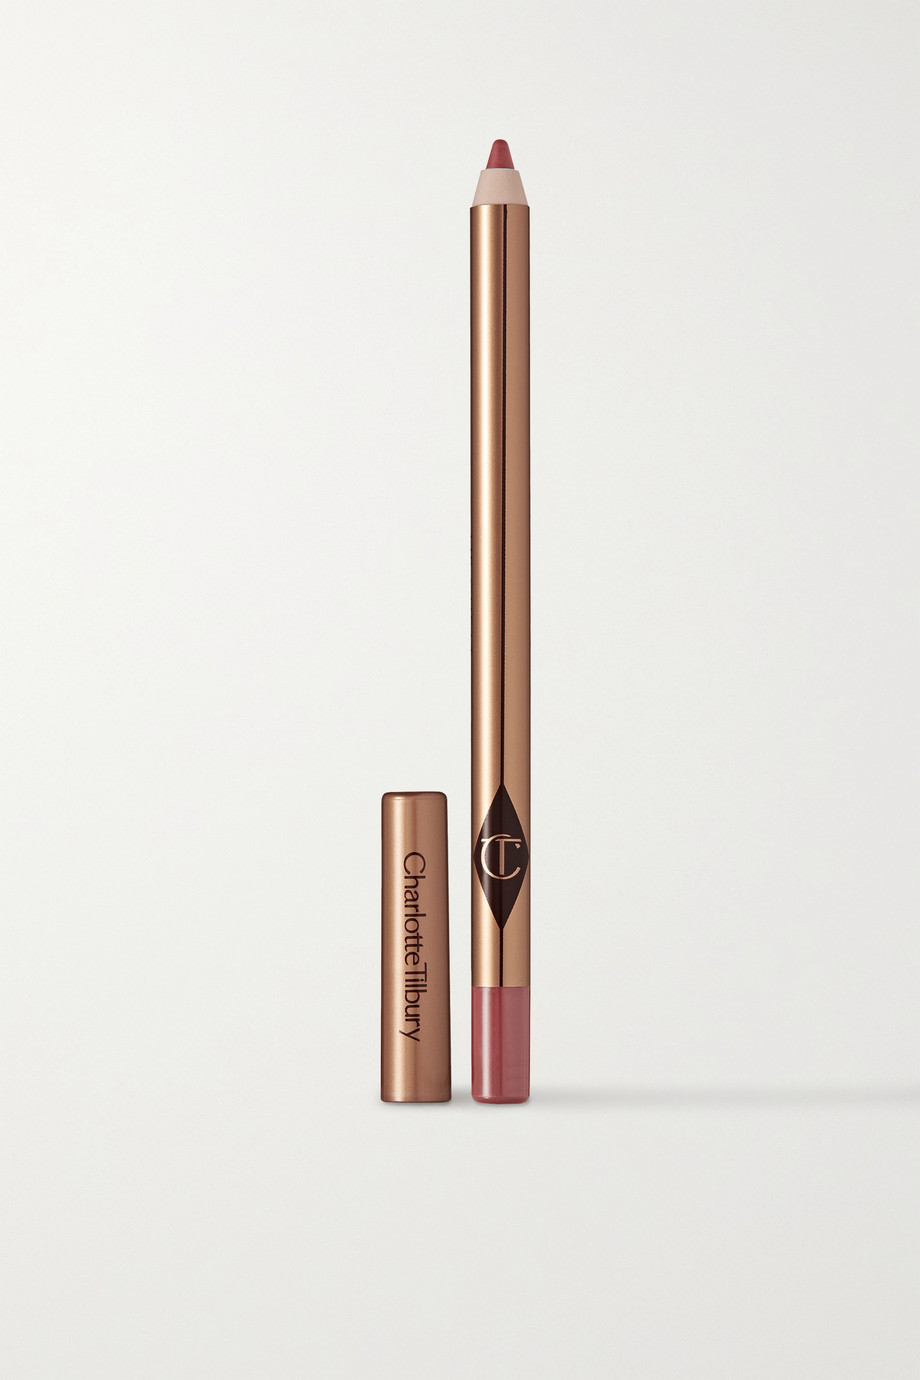 Charlotte Tilbury Lip Cheat Lip Liner - Pillow Talk